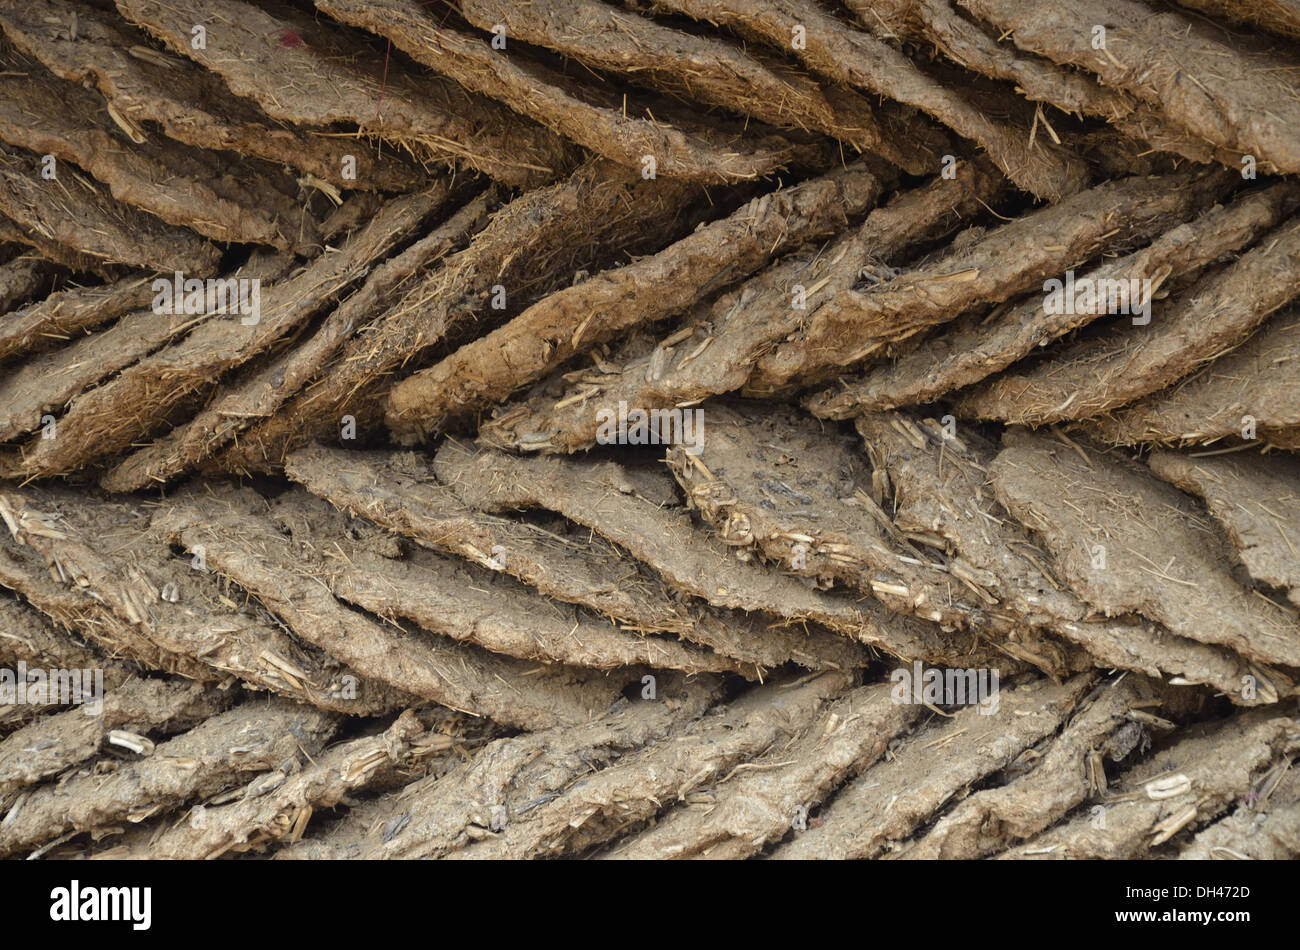 Gobar Cow dung cakes stacked in four rows Jodhpur Rajasthan India Asia - Stock Image